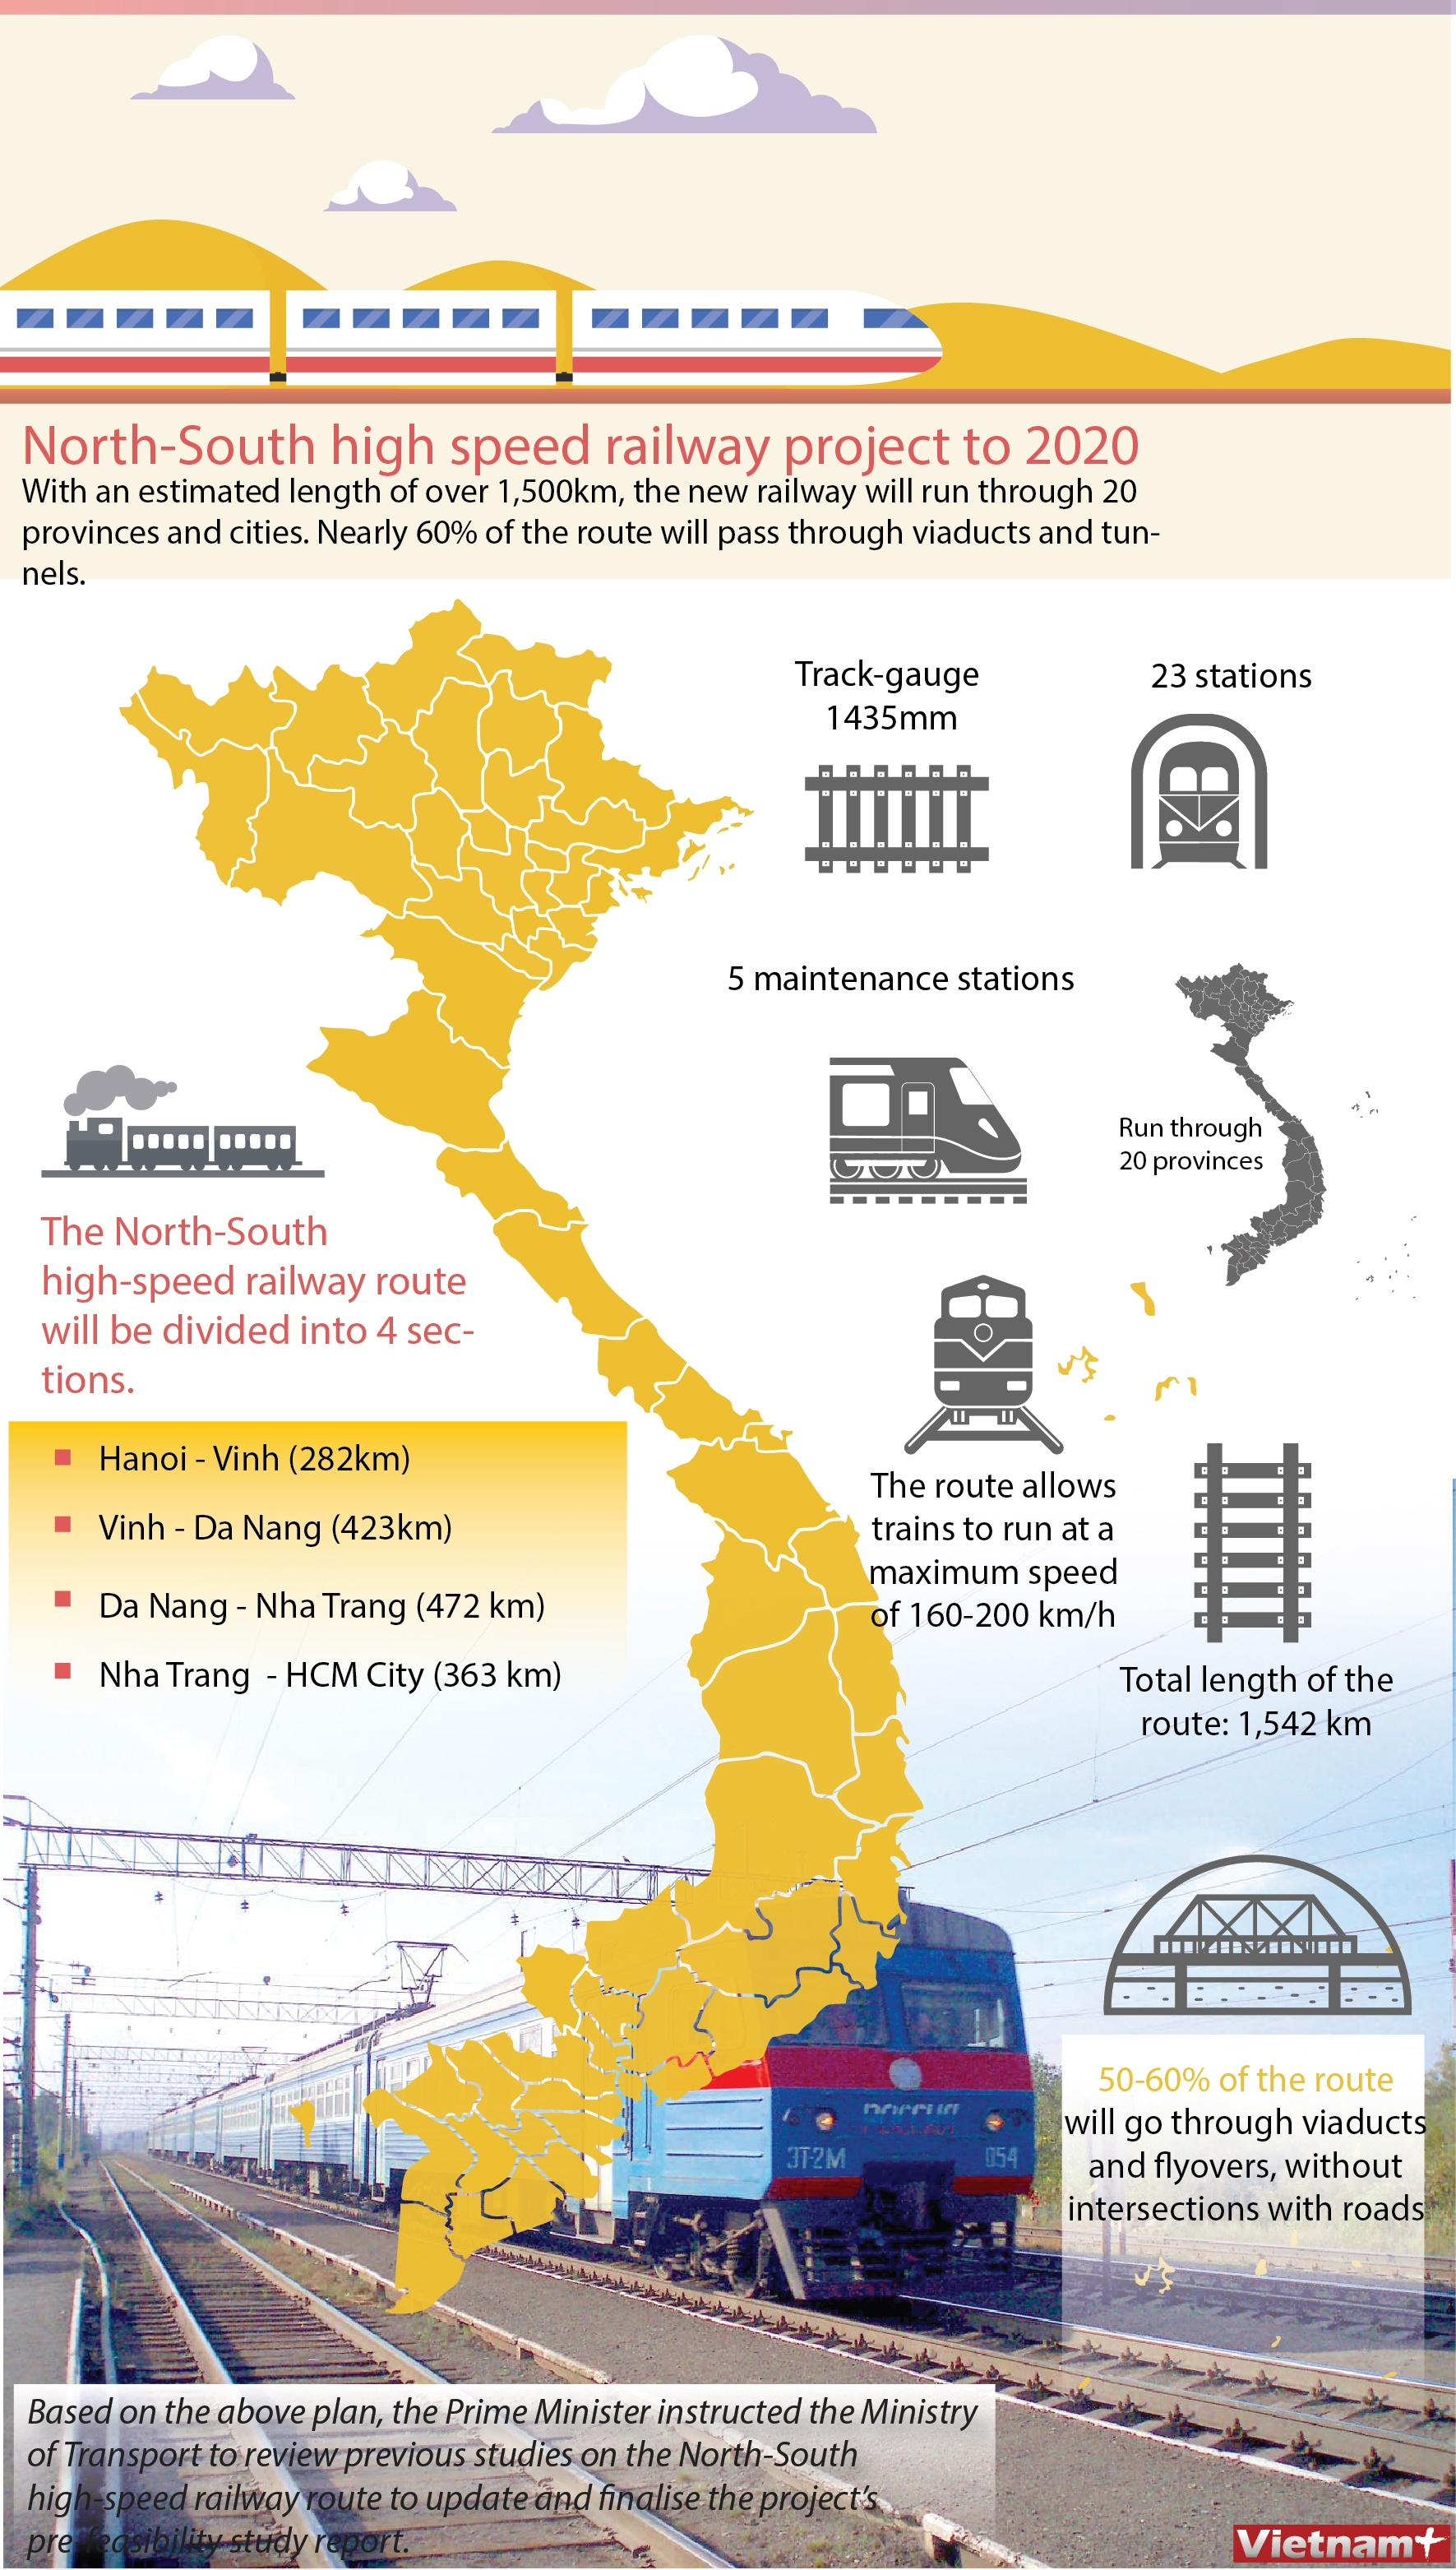 north south high speed railway project to 2020